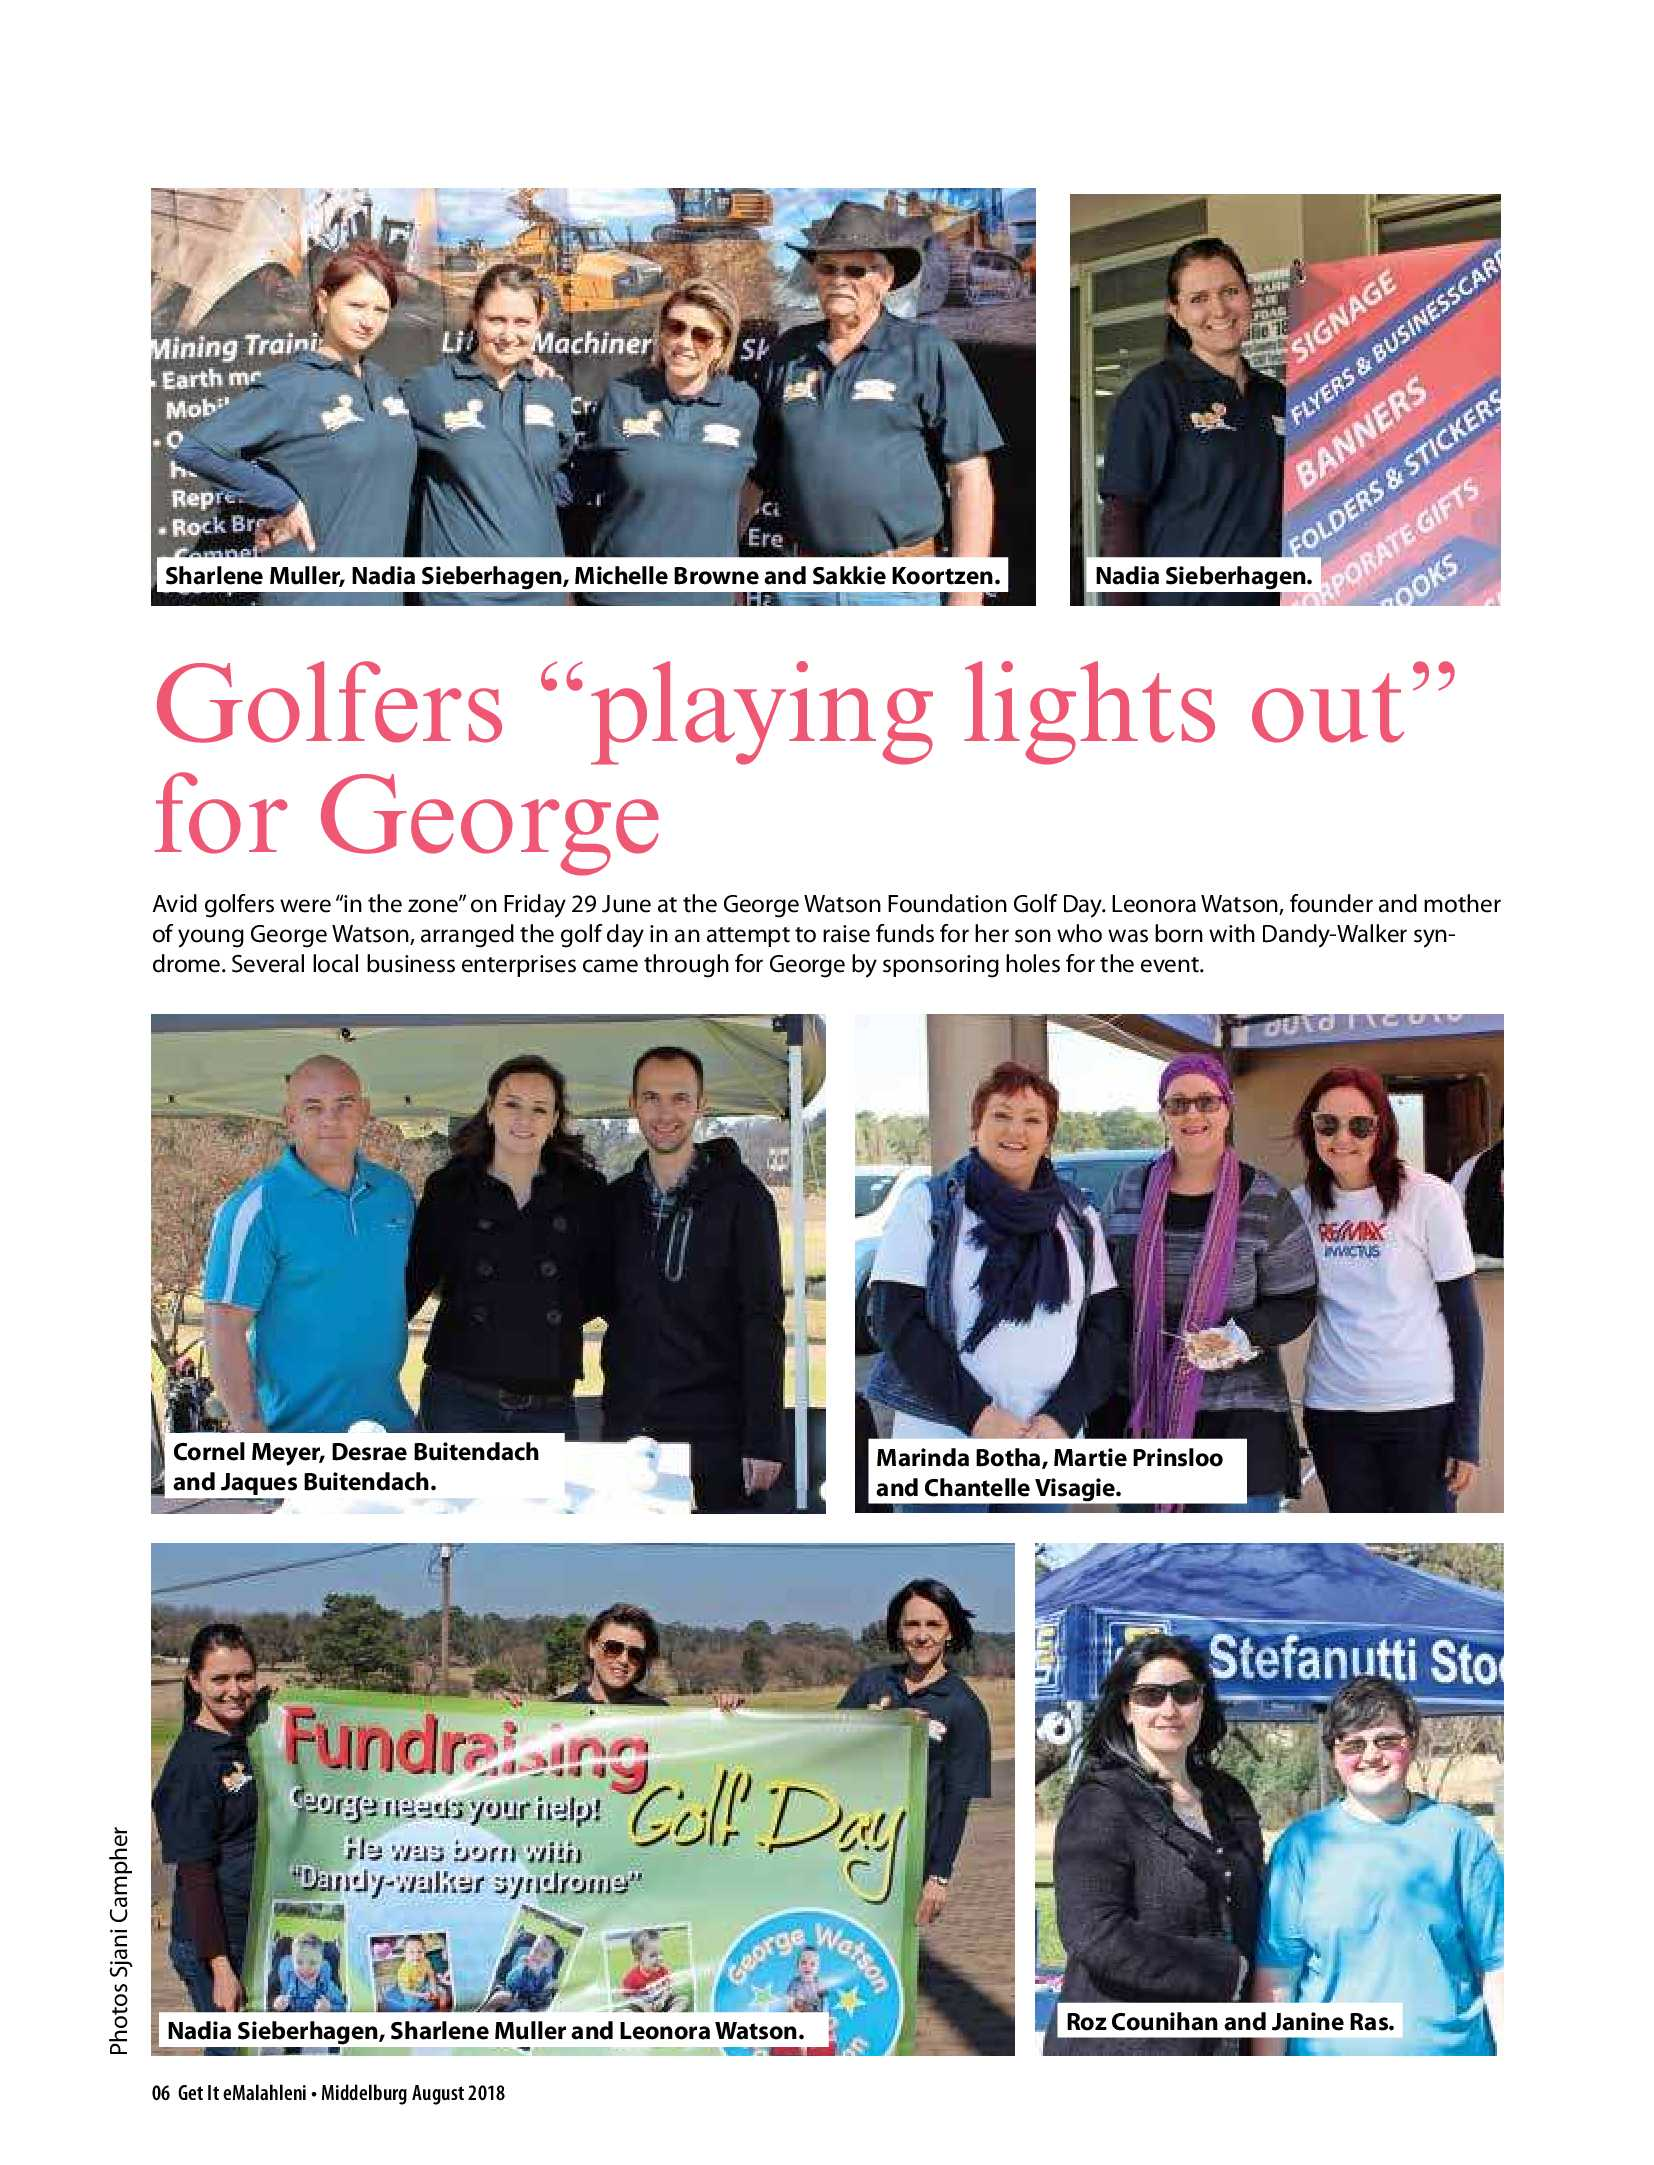 get-middelburg-september-2018-epapers-page-8